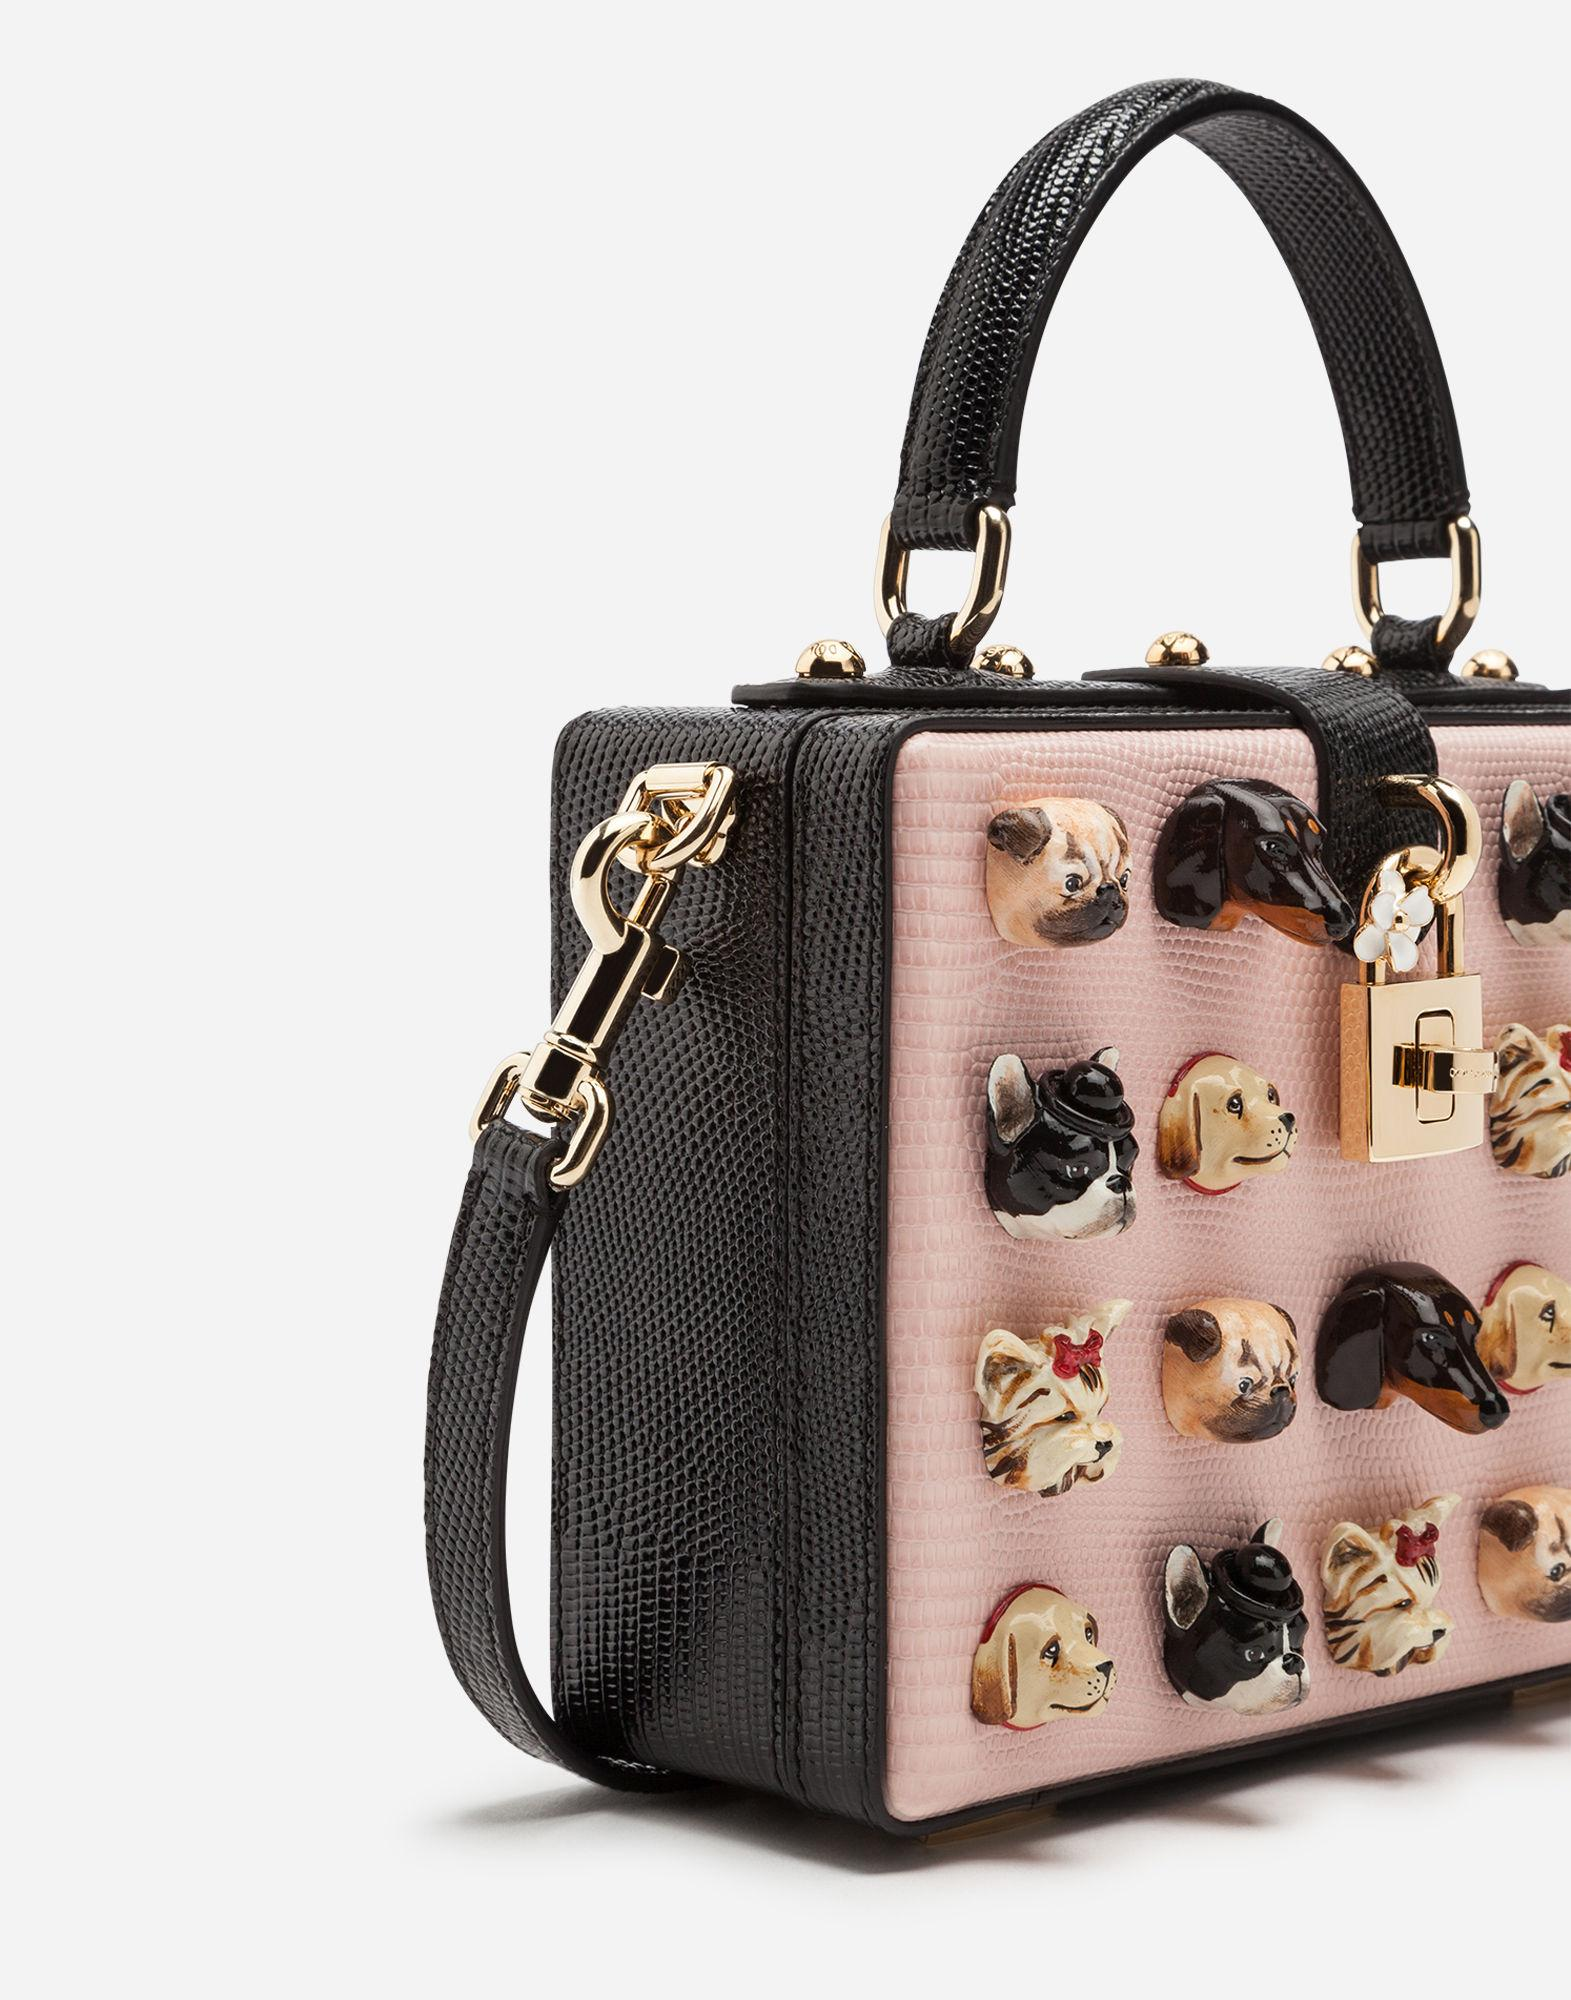 6e6ce777e1c Dolce   Gabbana Dolce Box Bag In Iguana Print Calfskin With Dogs Embroidery  In Pink